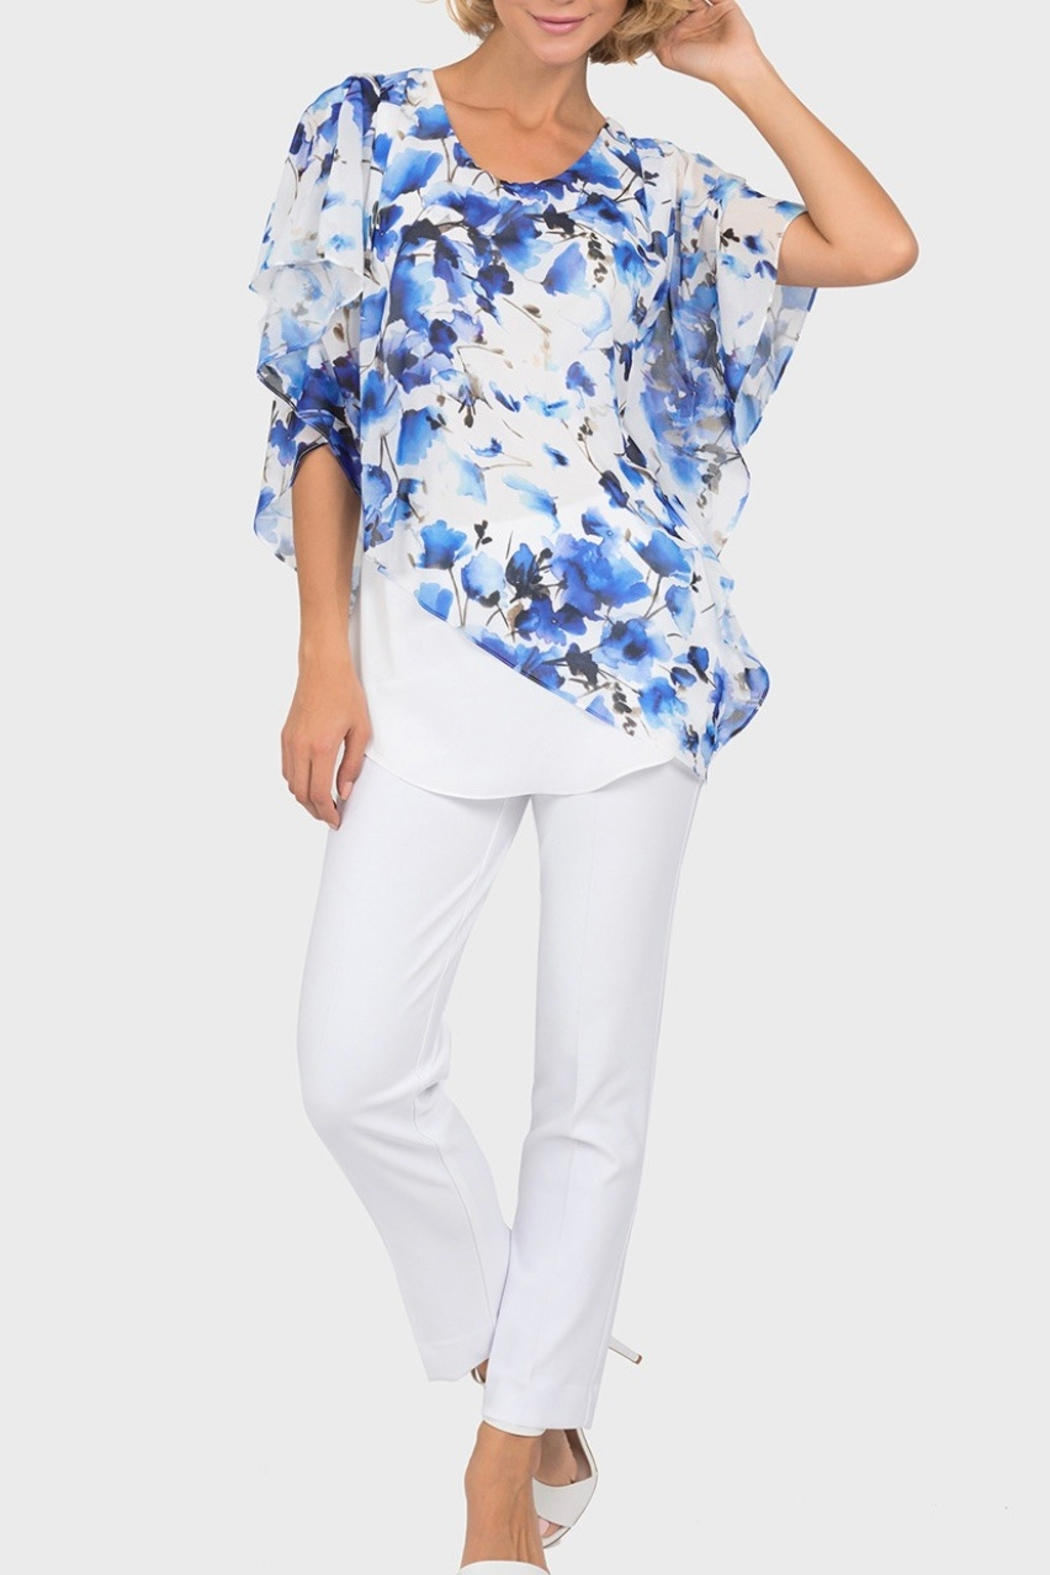 Joseph Ribkoff  Blue floral overlay on white tunic top - Main Image